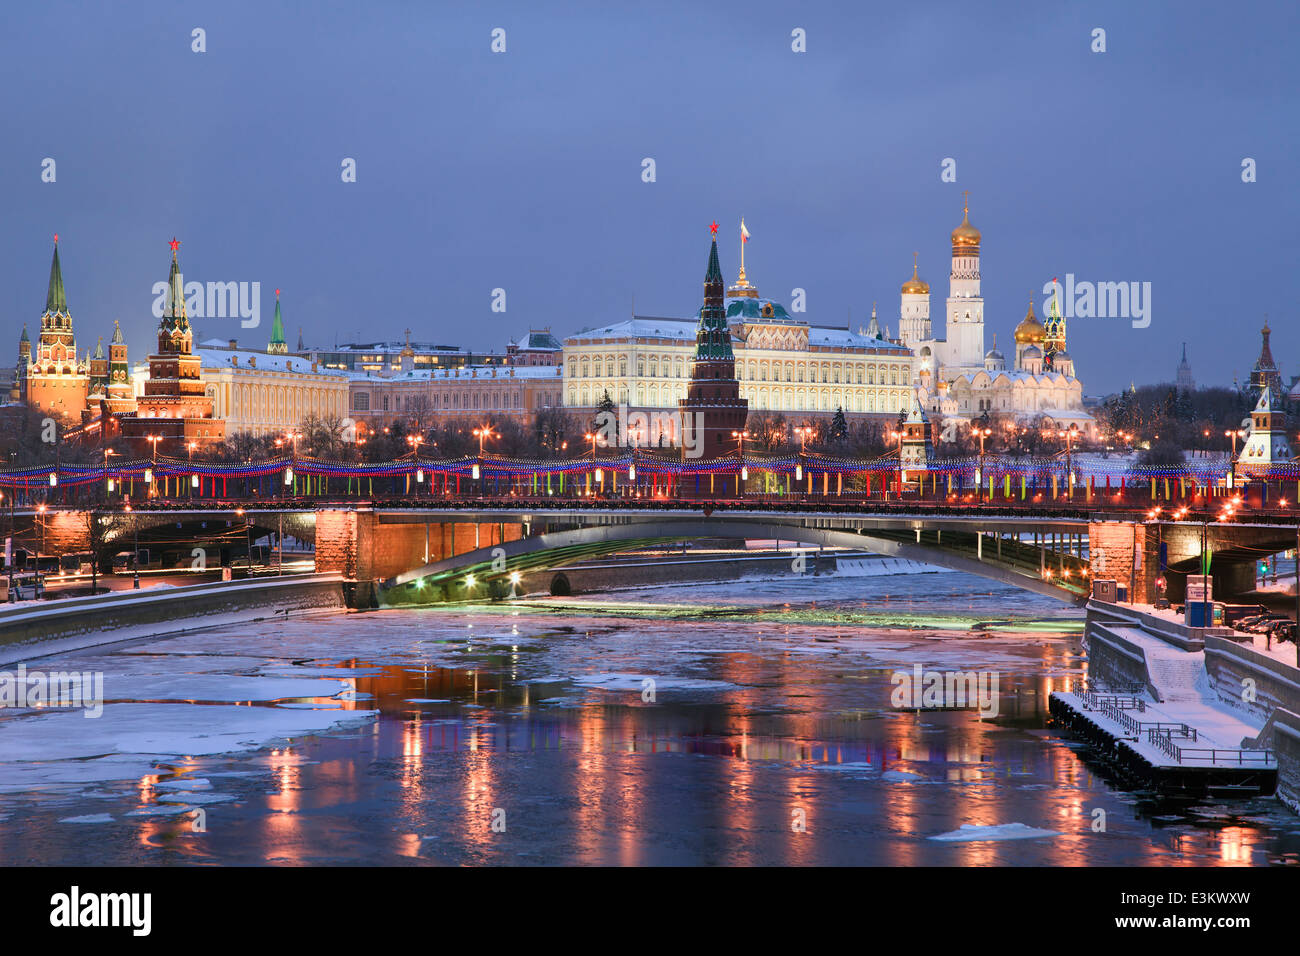 View of Moscow river and Kremlin embankment at the night - Stock Image